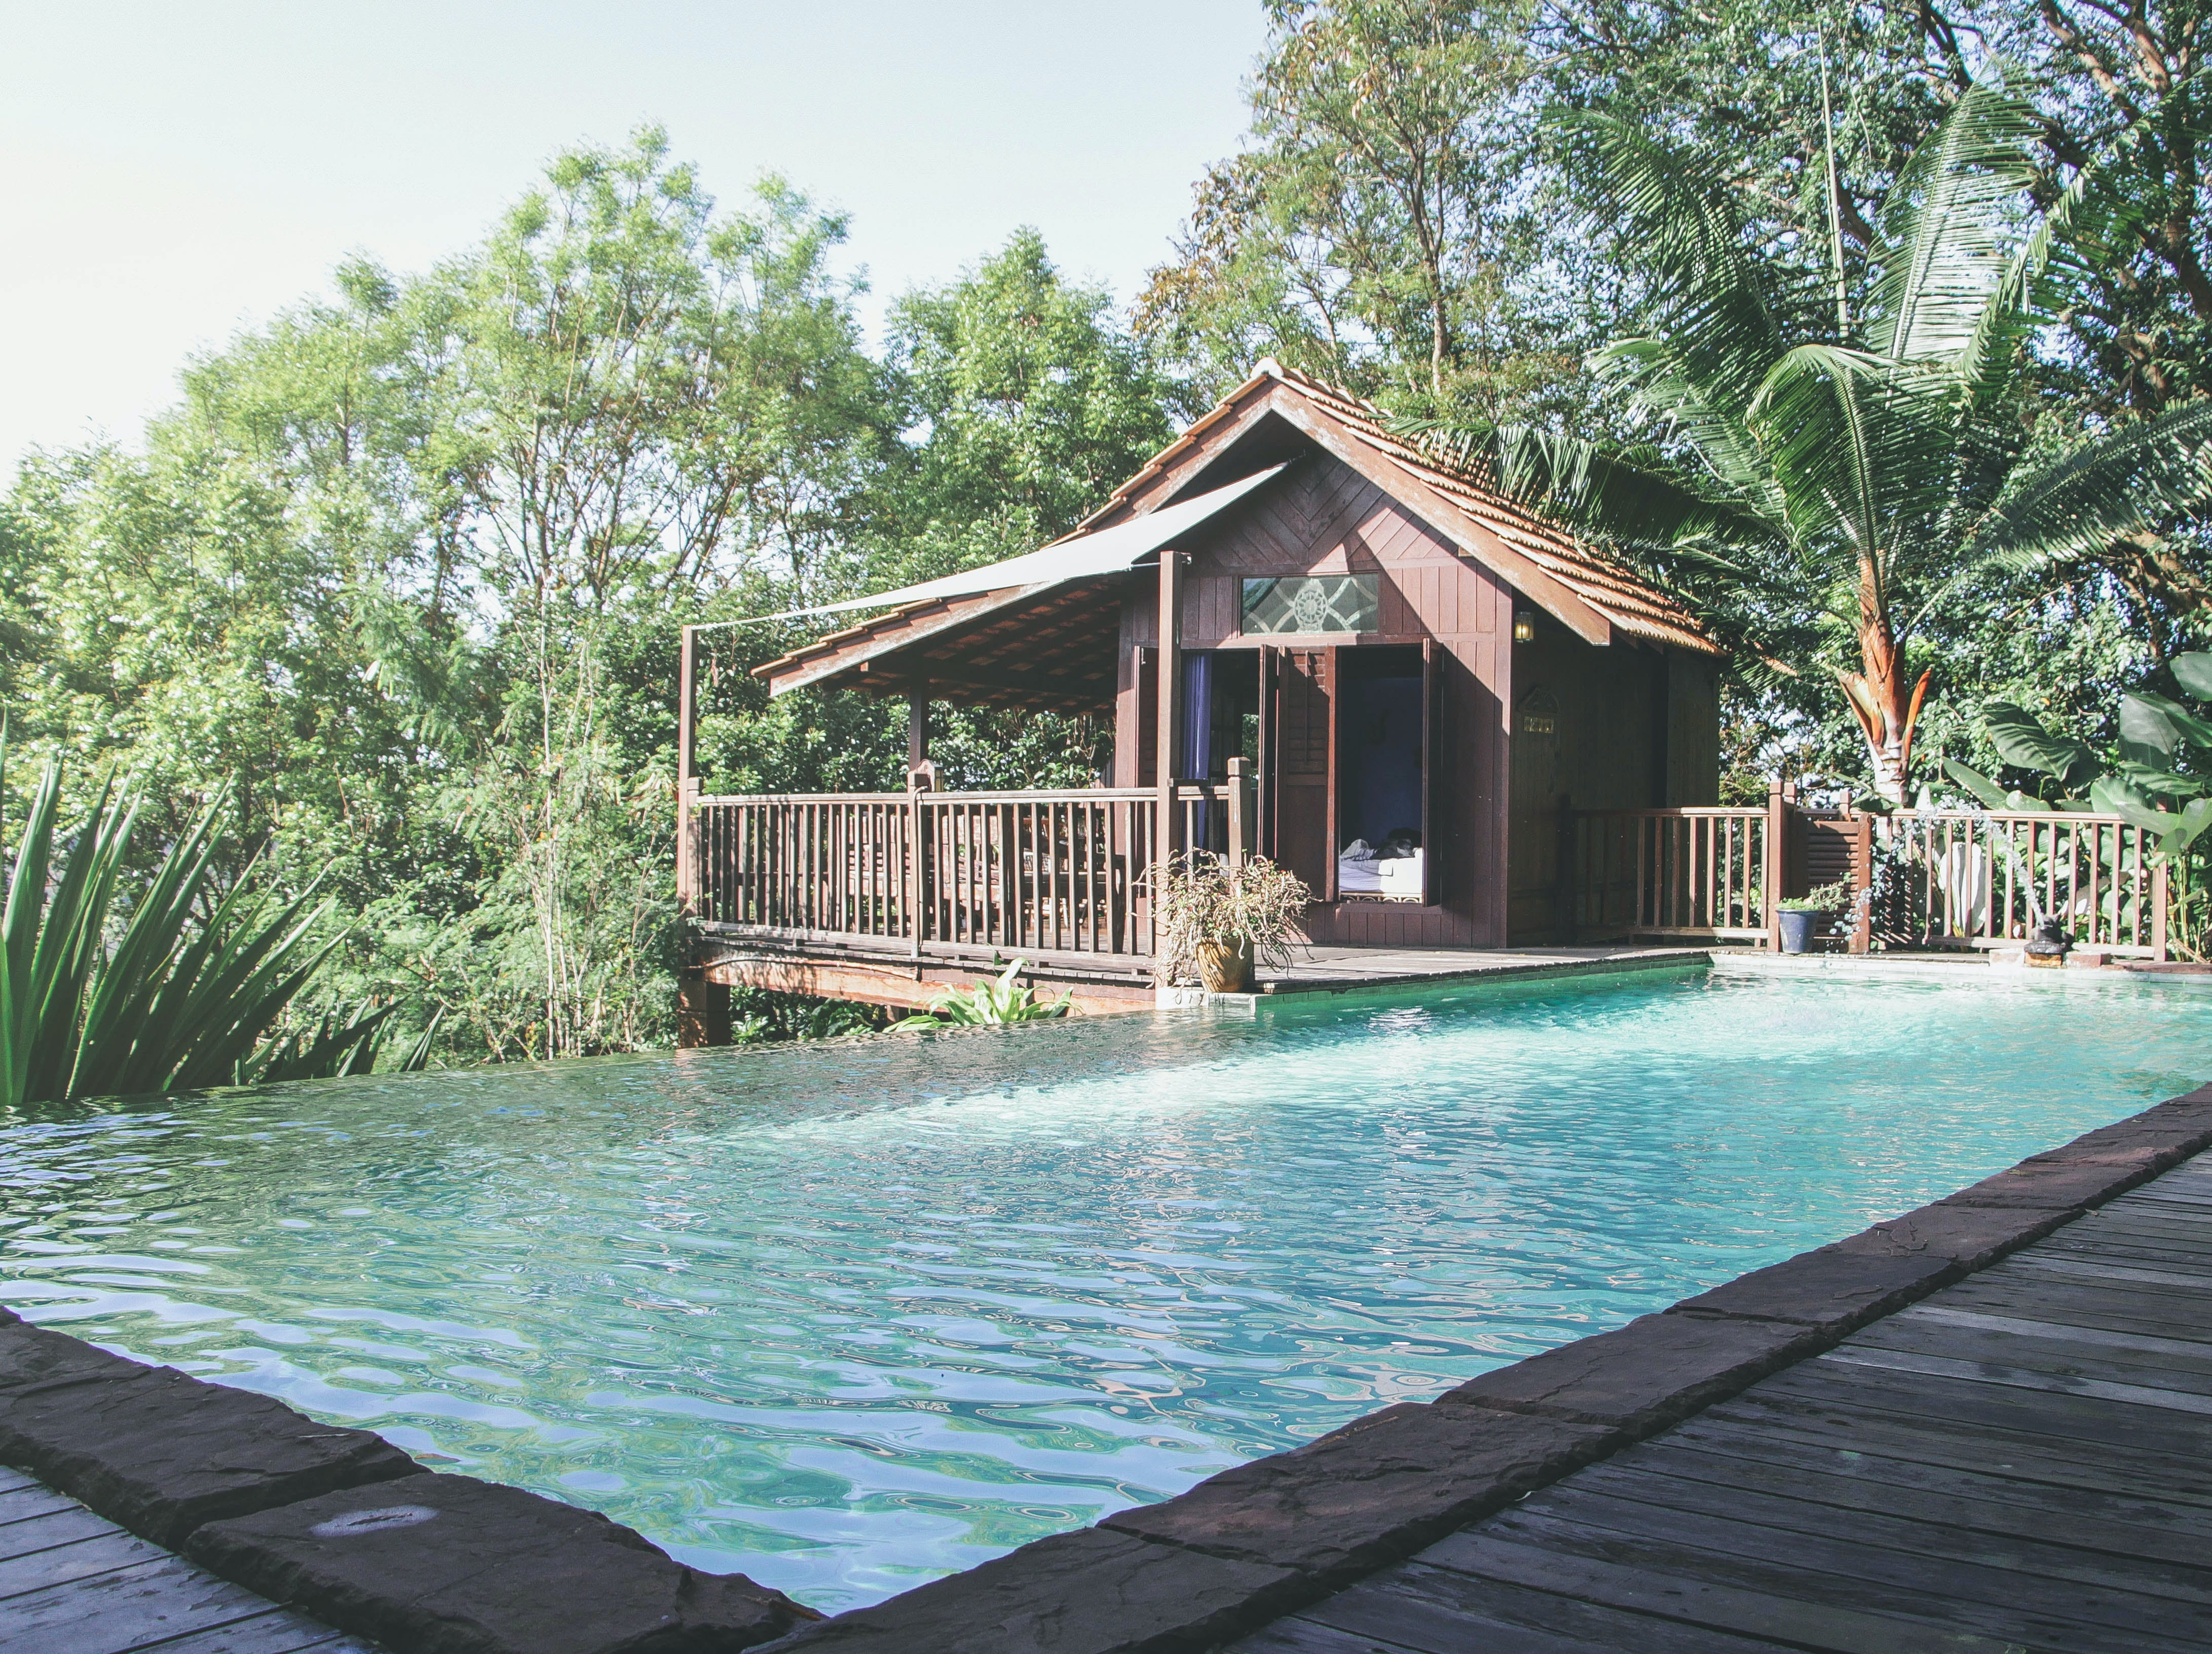 Free stock photo of jungle, nature, relaxation place, resort